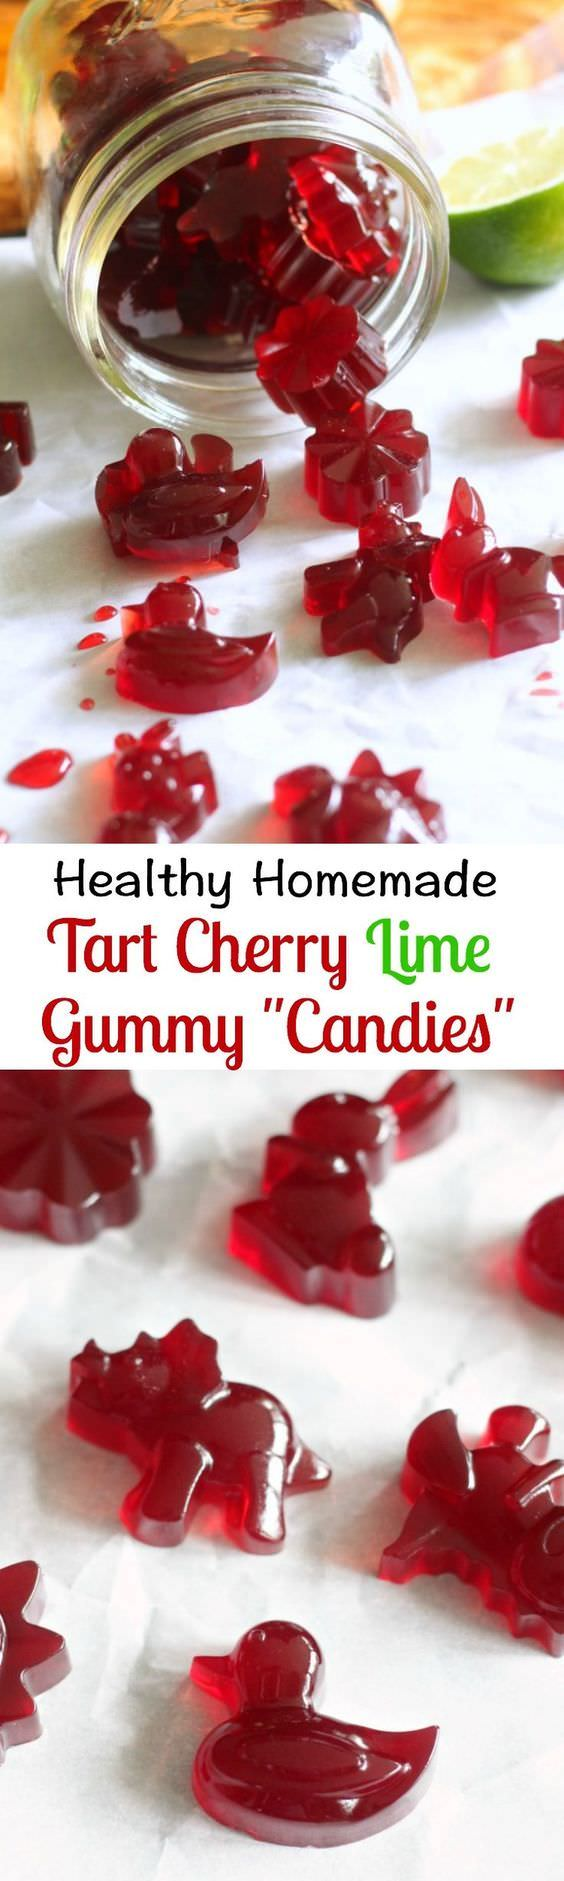 Immune boosting and gut healing Paleo Tart Cherry Lime Homemade Gummy Candy with Vital Proteins grass fed gelatin and tart cherry juice.